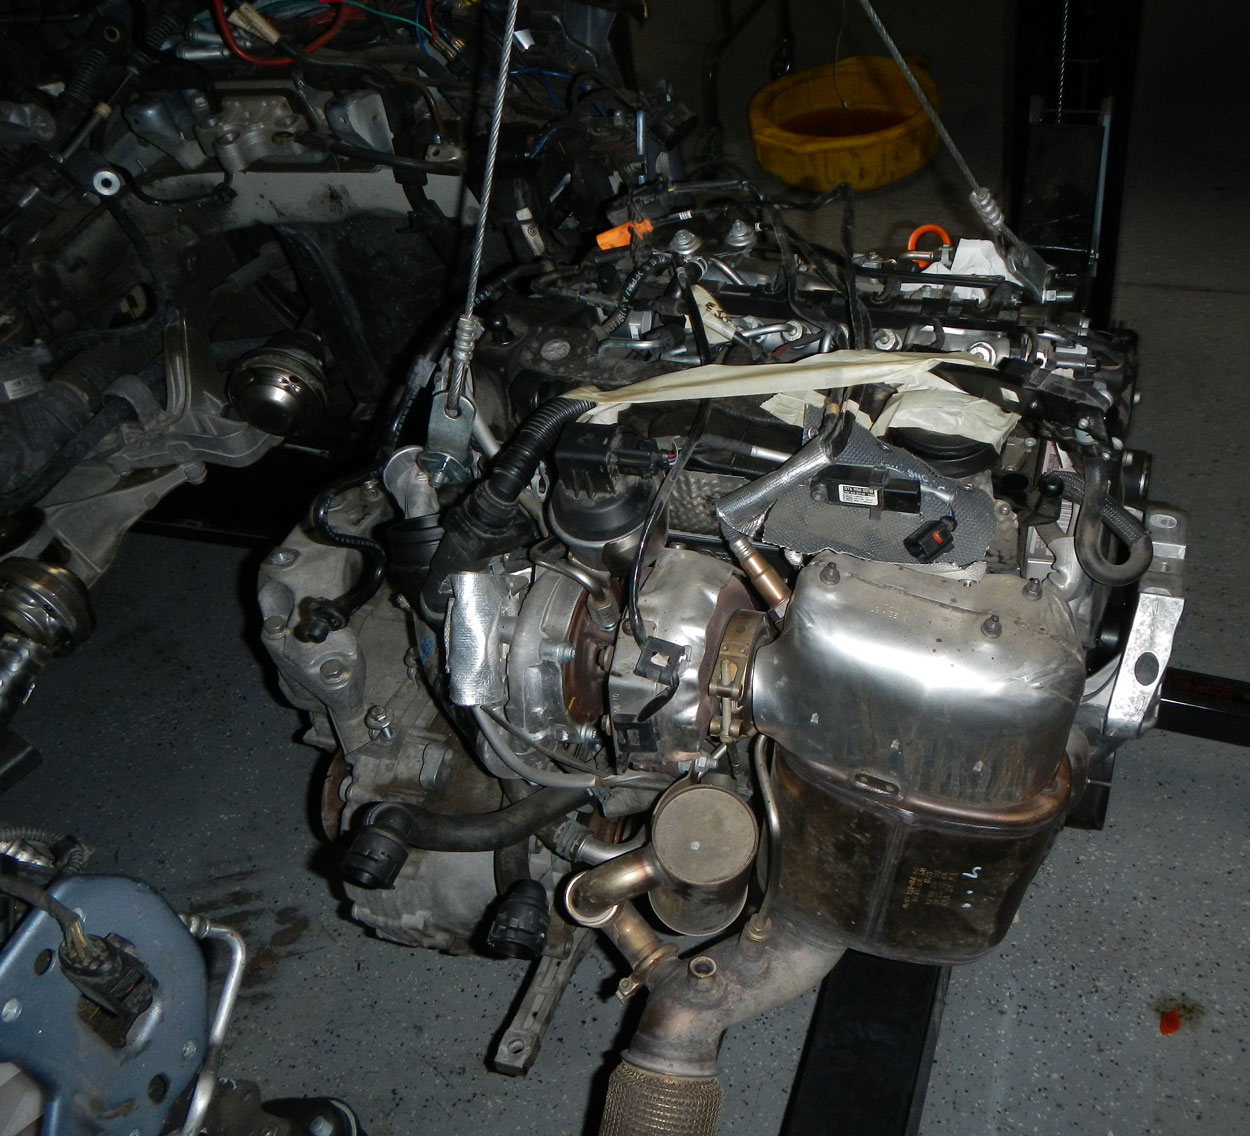 I didn t see any way to get the turbo out the top or out the bottom of the car without removing the cradle